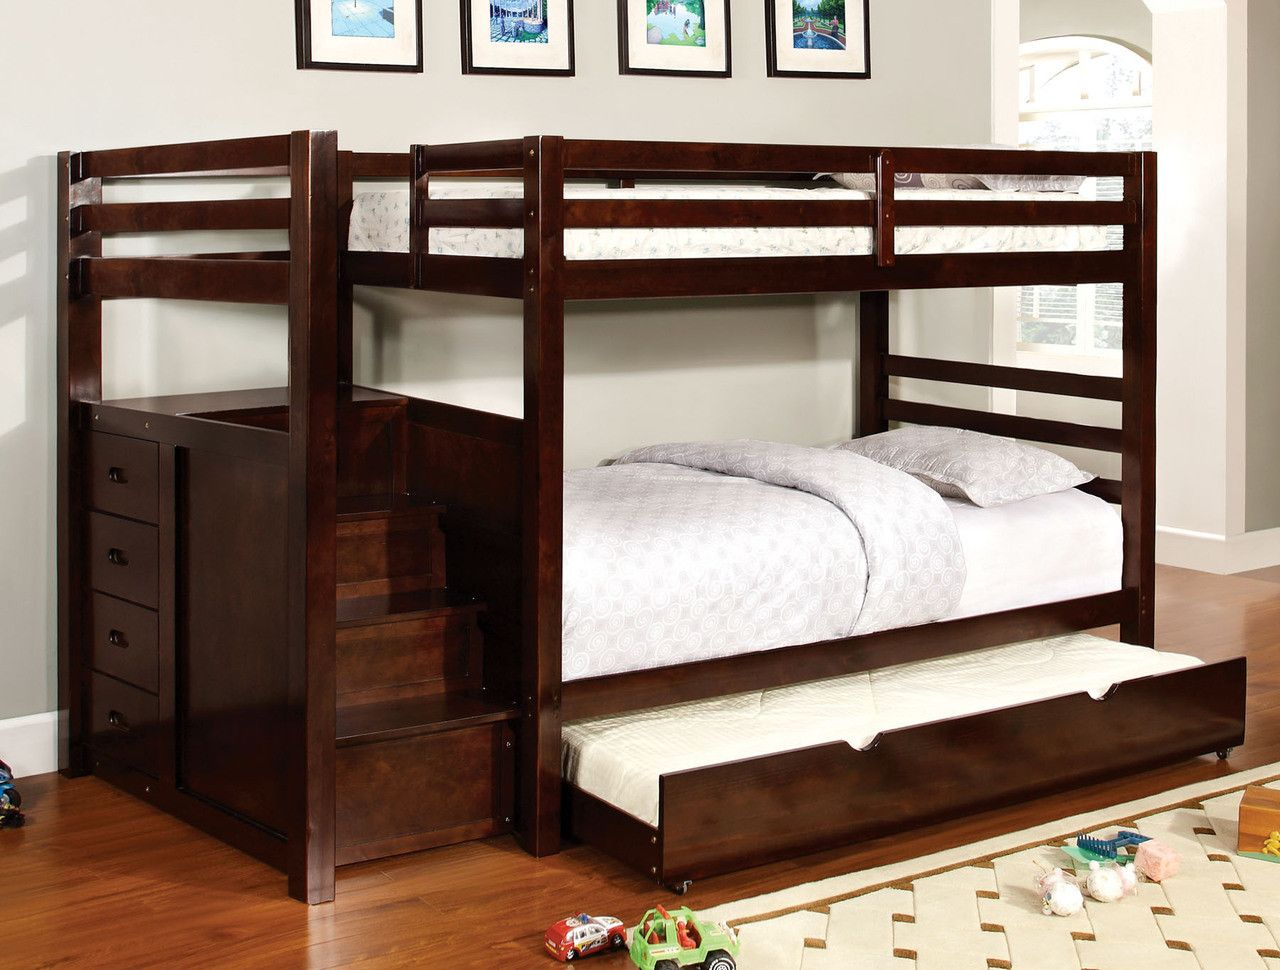 Furniture Of America Twin Twin Bunk Bed W Steps And Drawers Cm Bk966 For 675